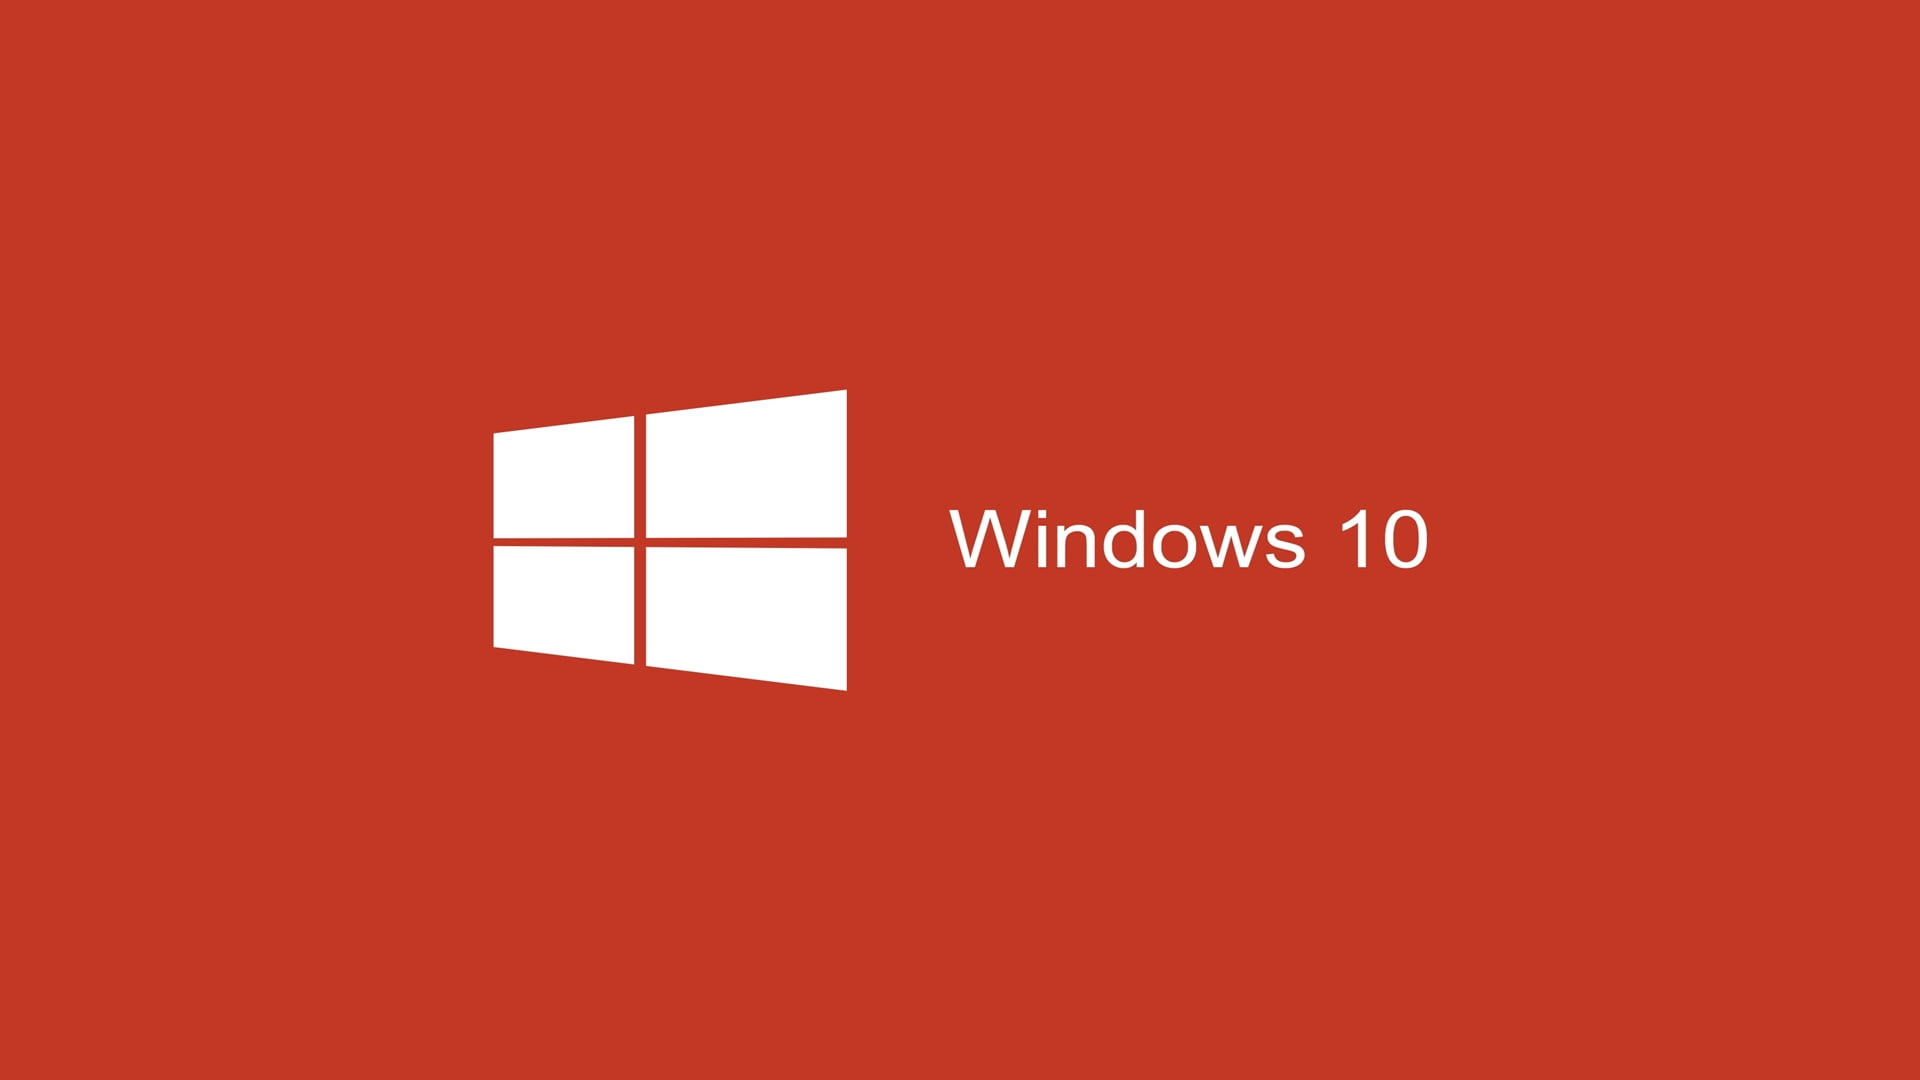 Pap is de parede do windows 10 hd download meu windows for Cpm windows 10